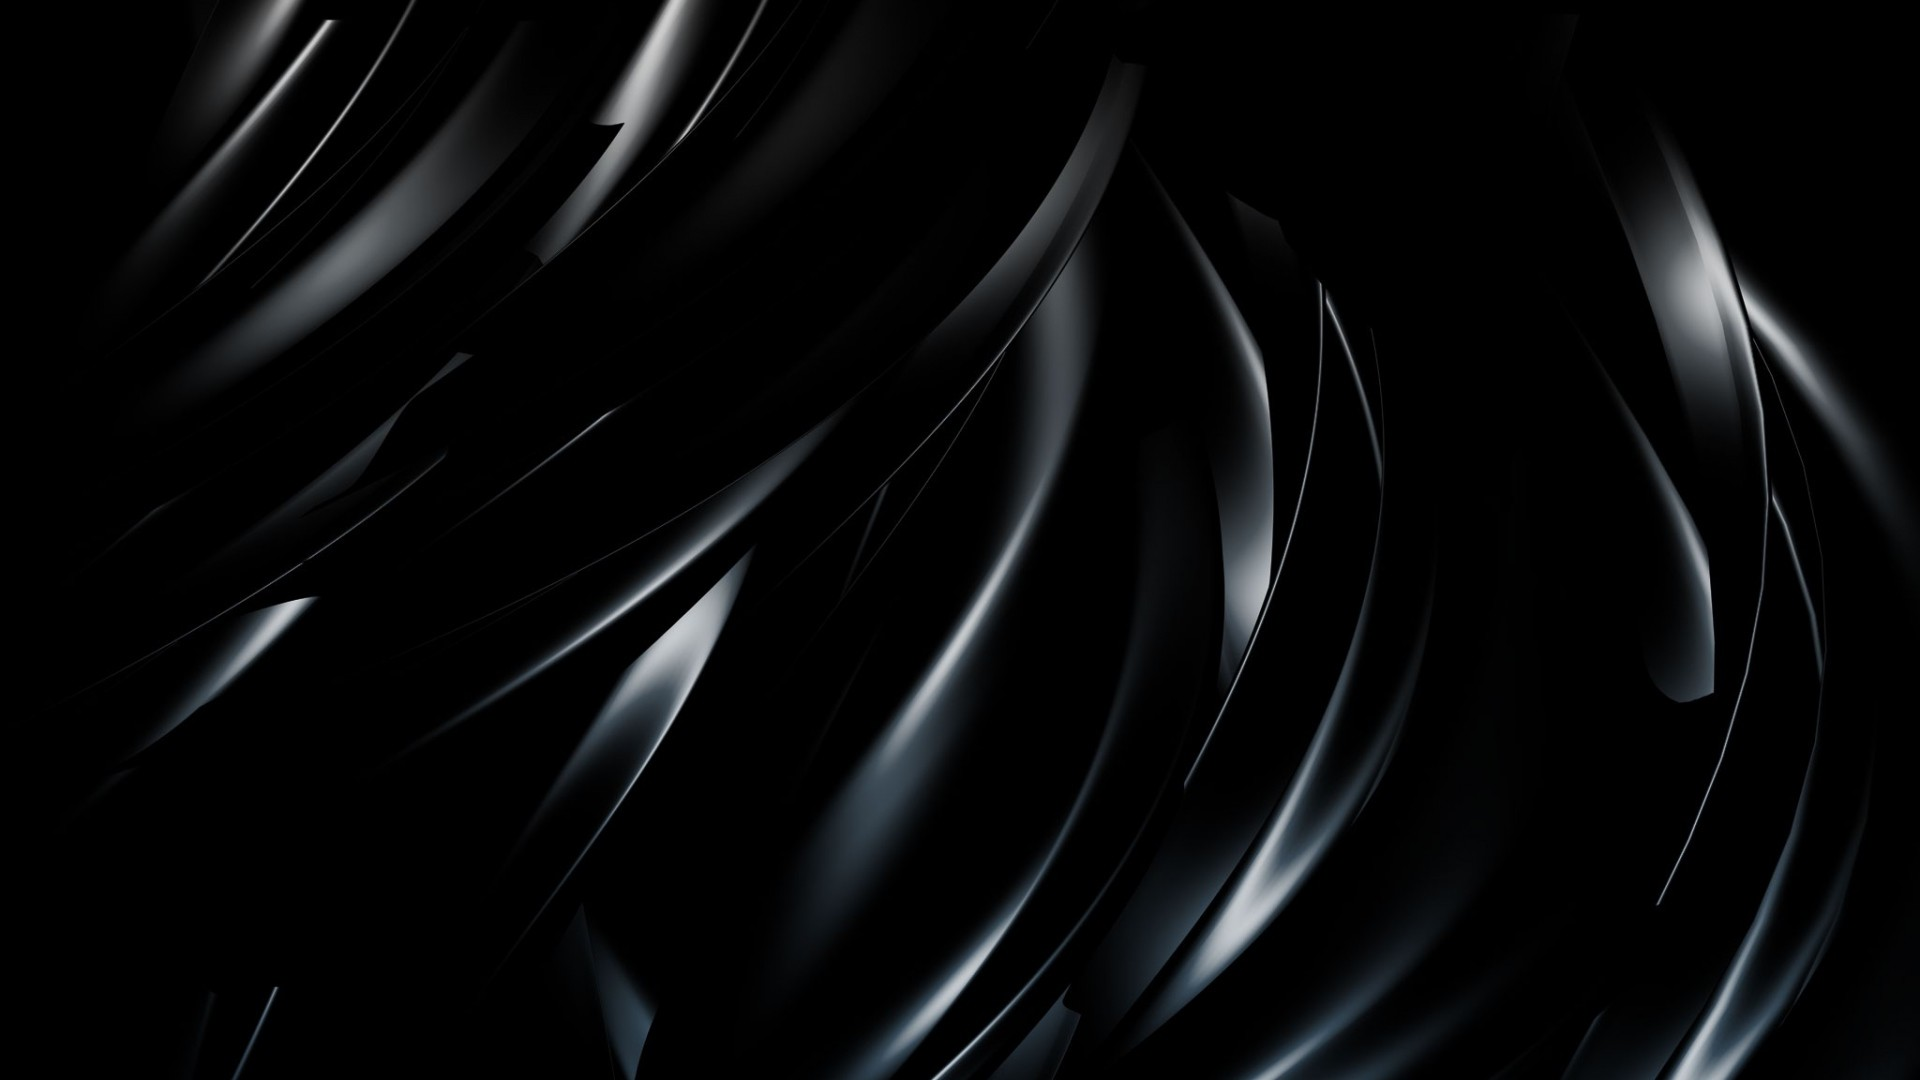 Get the latest fiber, dark, line news, pictures and videos and learn all  about fiber, dark, line from wallpapers4u.org, your wallpaper news source.